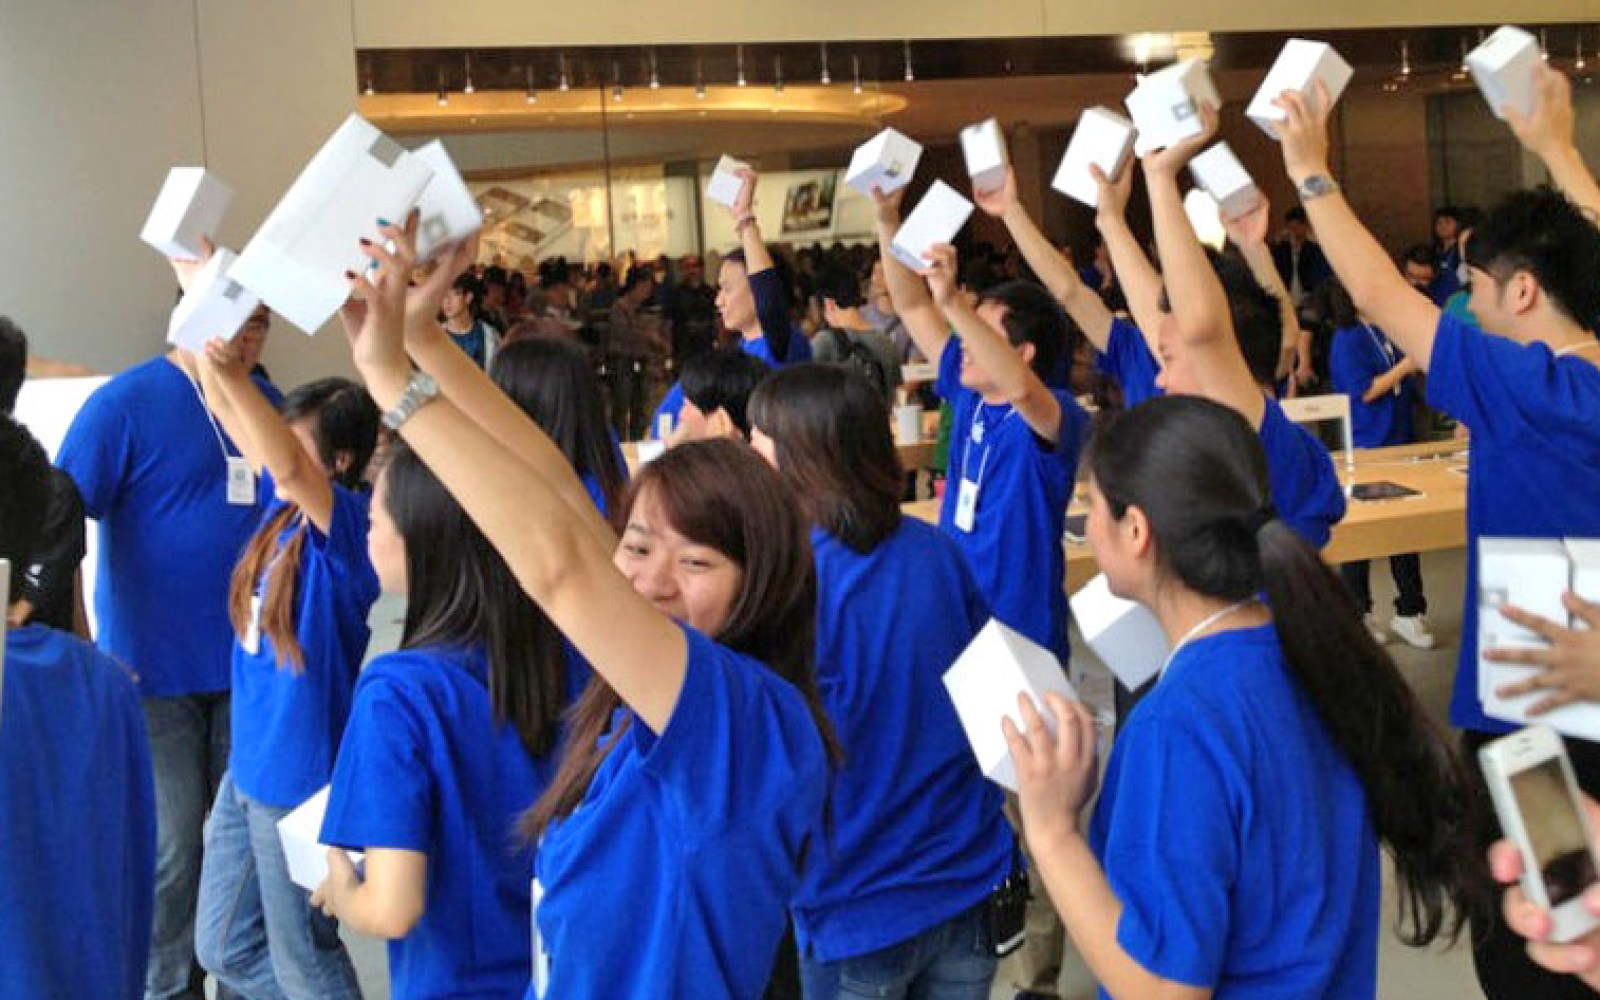 Analysts predicting record iPhone launch, China & Japan deals adding up to 38M extra sales